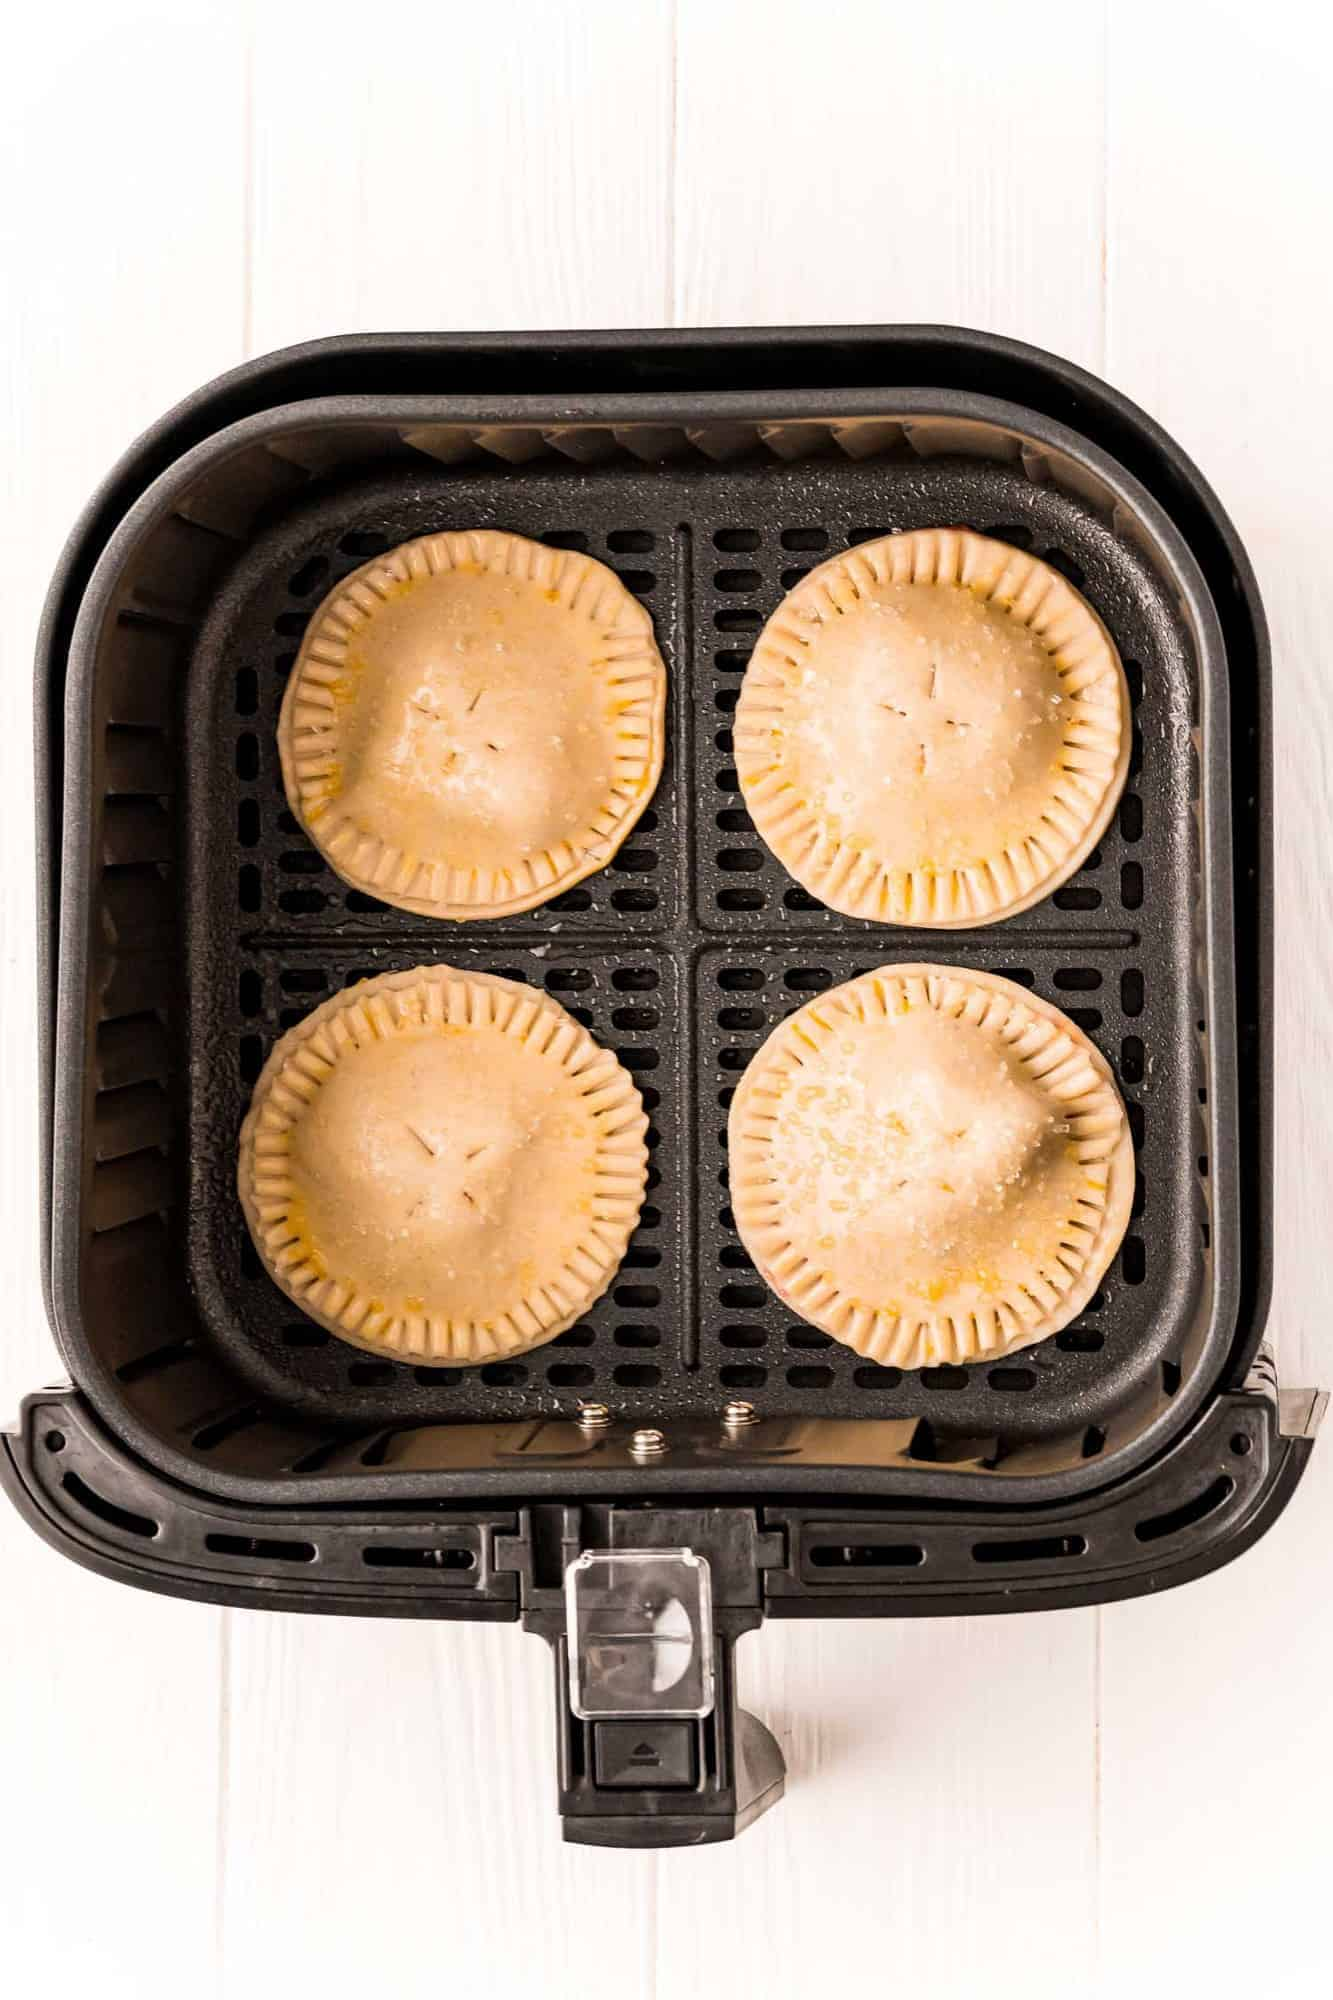 Uncooked hand pies in the basket of an air fryer.